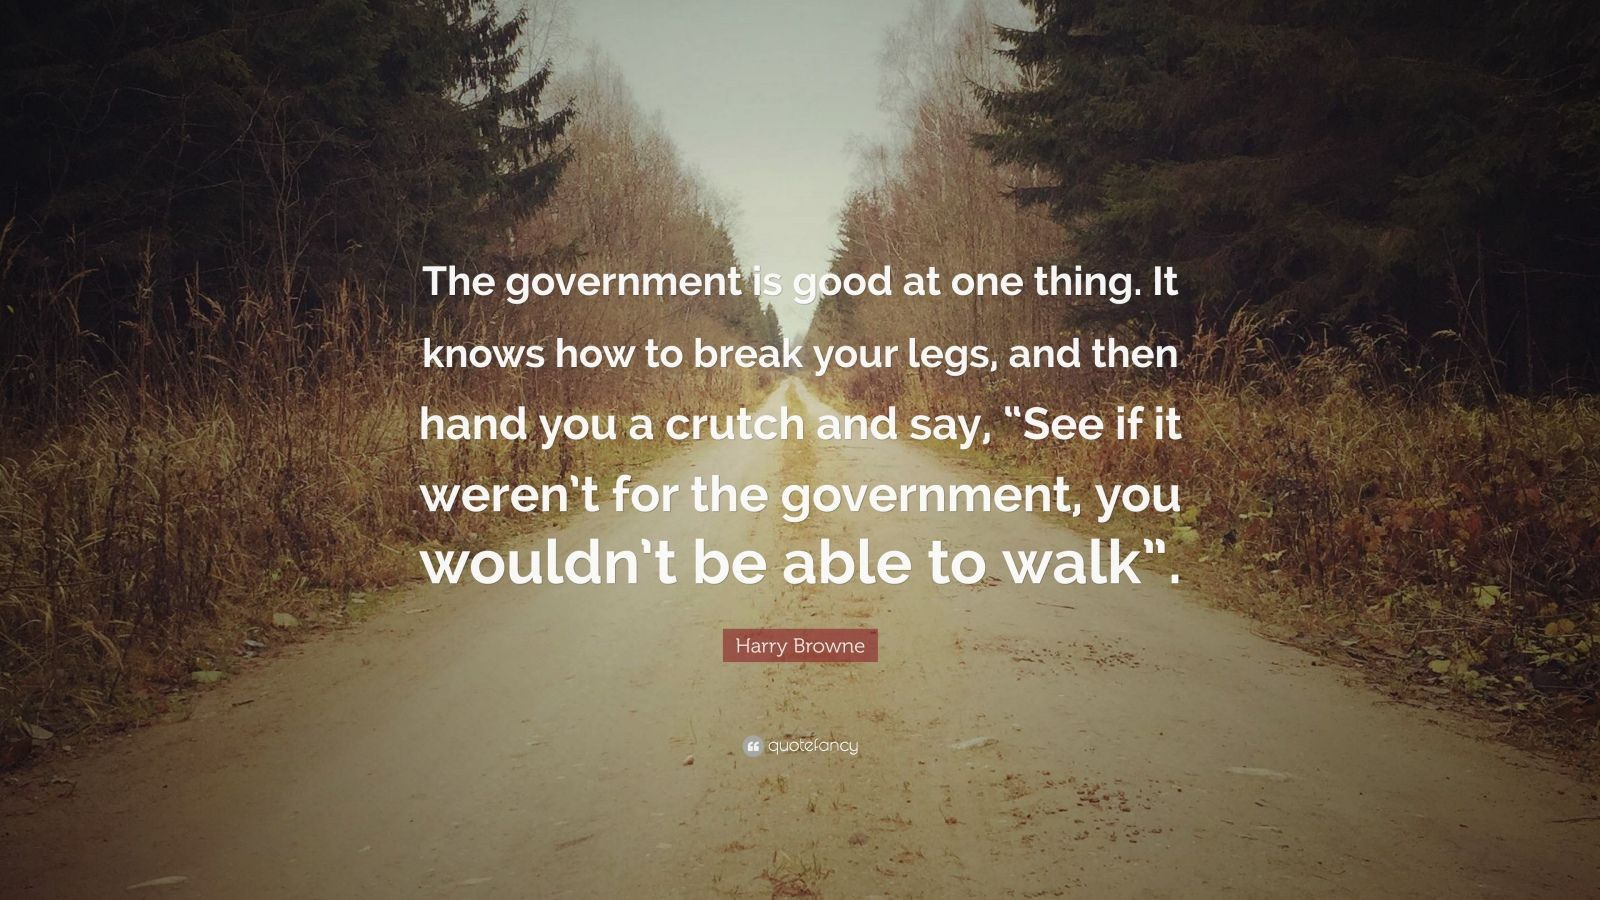 """Harry Browne Quote: """"The government is good at one thing. It knows how to break your legs, and then hand you a crutch and say, """"See if it weren't for the government, you wouldn't be able to walk""""."""""""